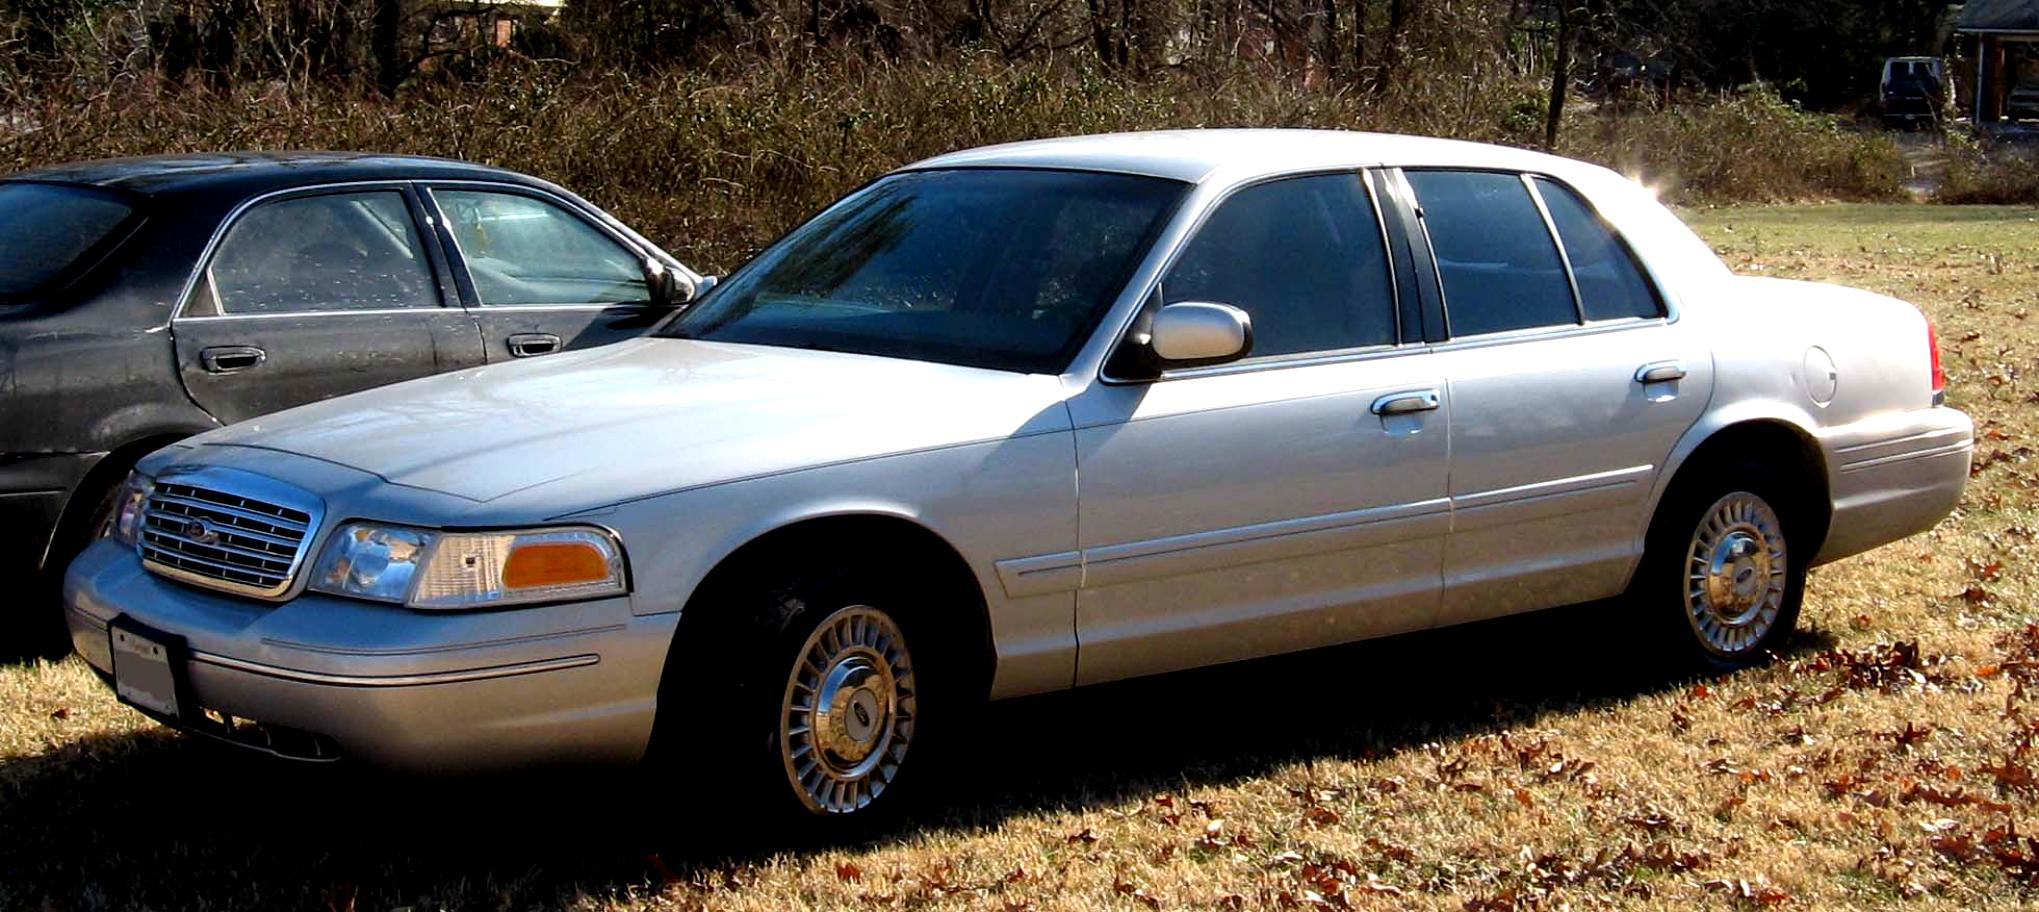 Ford Crown Victoria 1998 #1